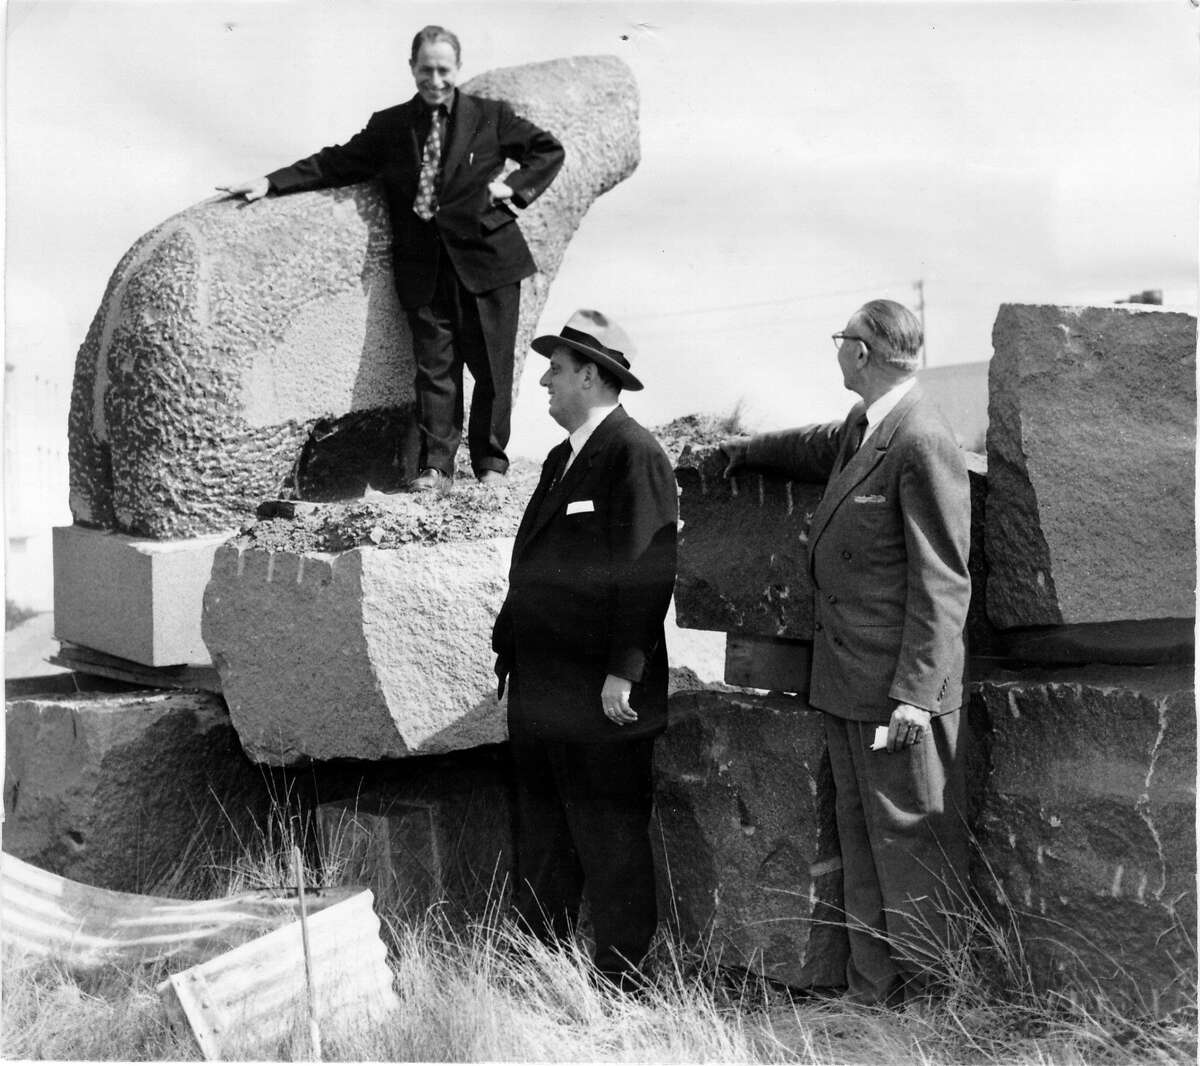 Beniamino Bufano posed atop one of his bear sculptures in 1956.